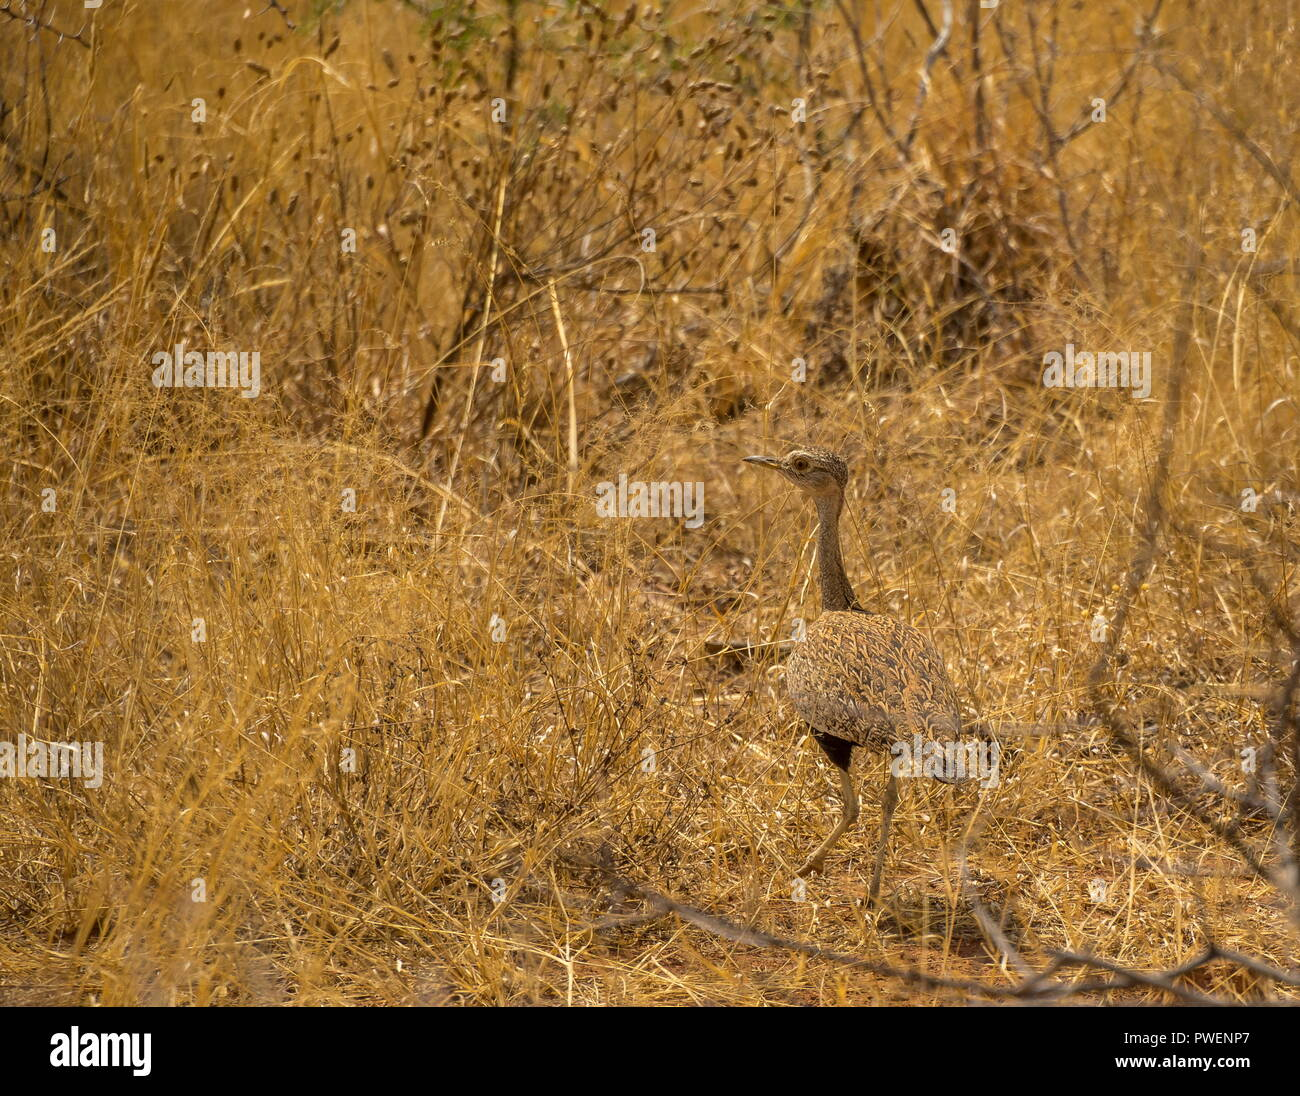 A wild bird well camouflaged in its natural surroundings image with copy space in landscape format - Stock Image